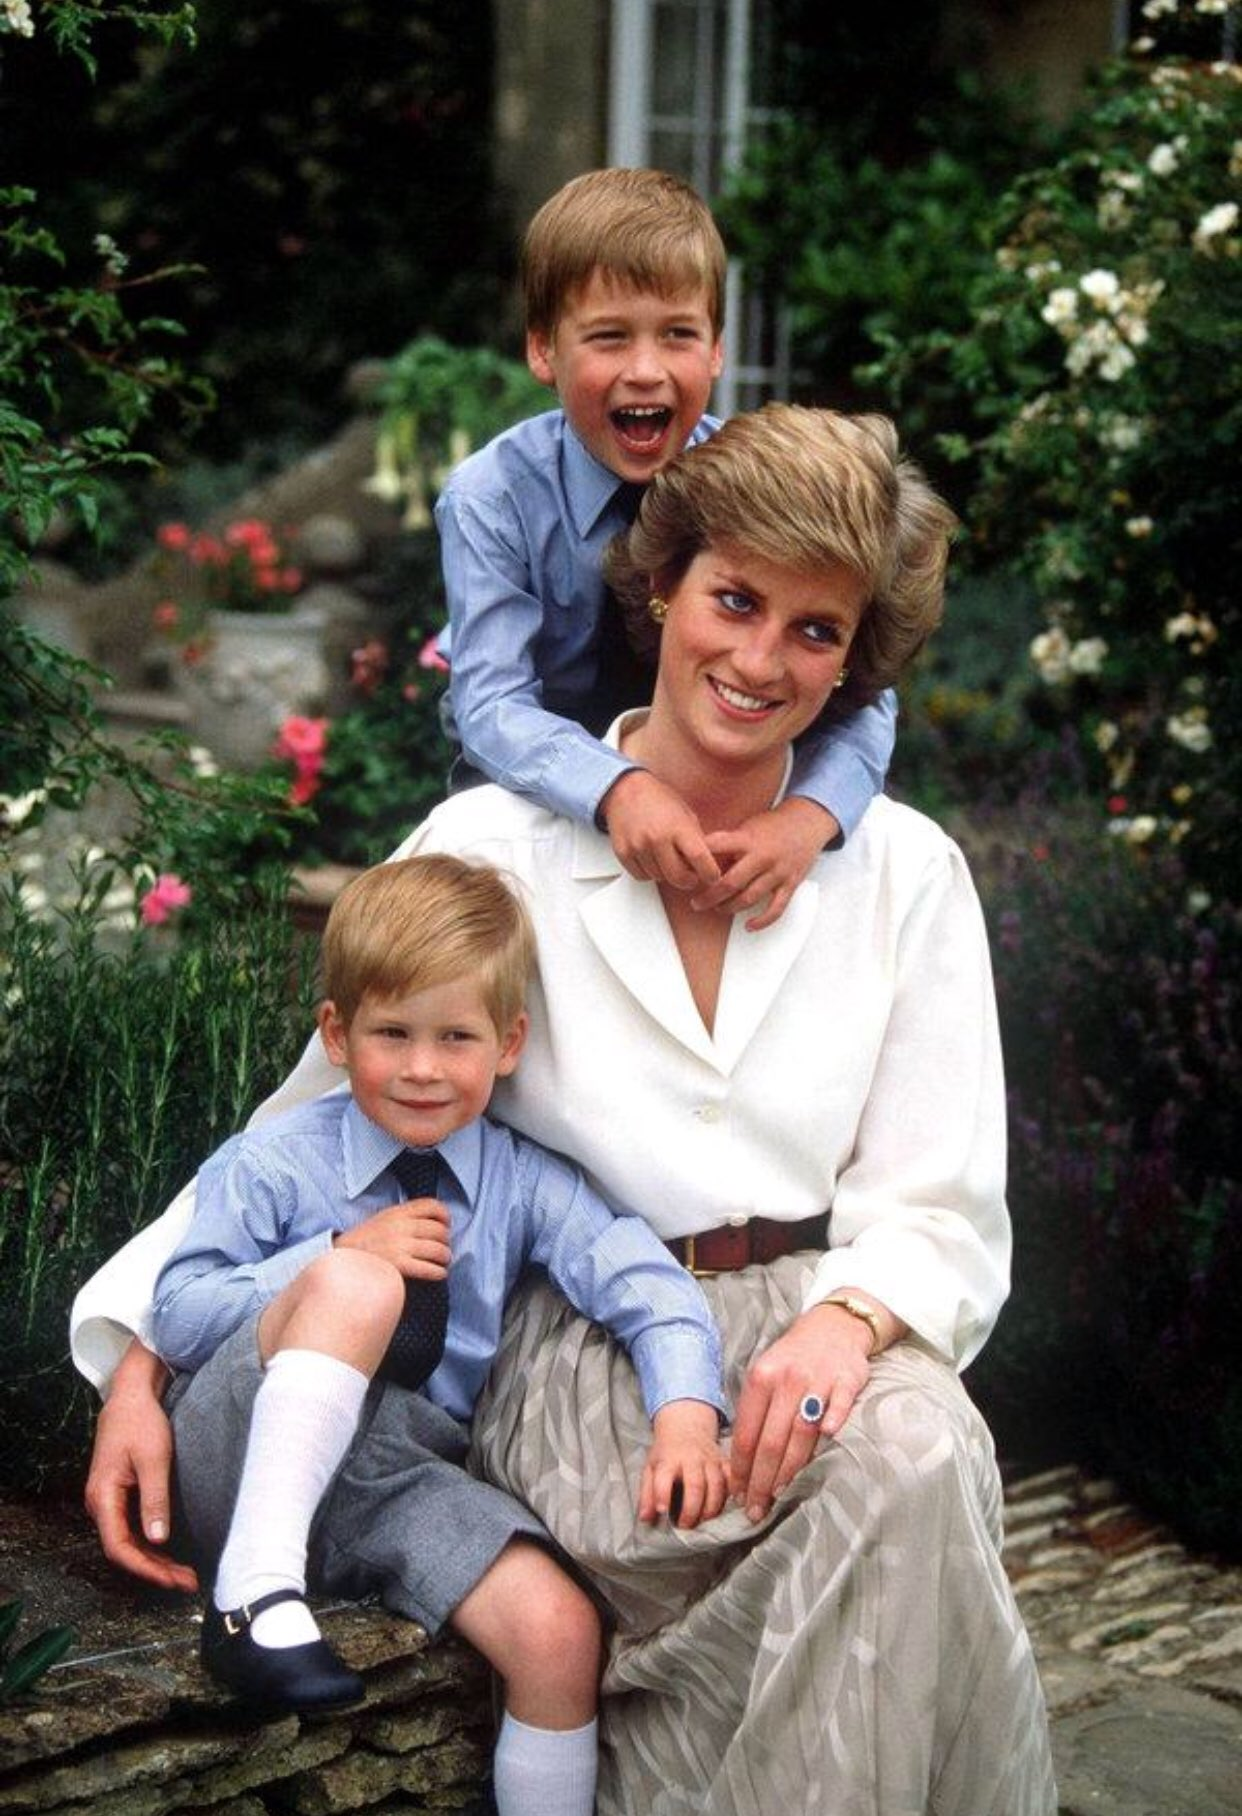 Happy birthday Princess Diana! The best there ever was.